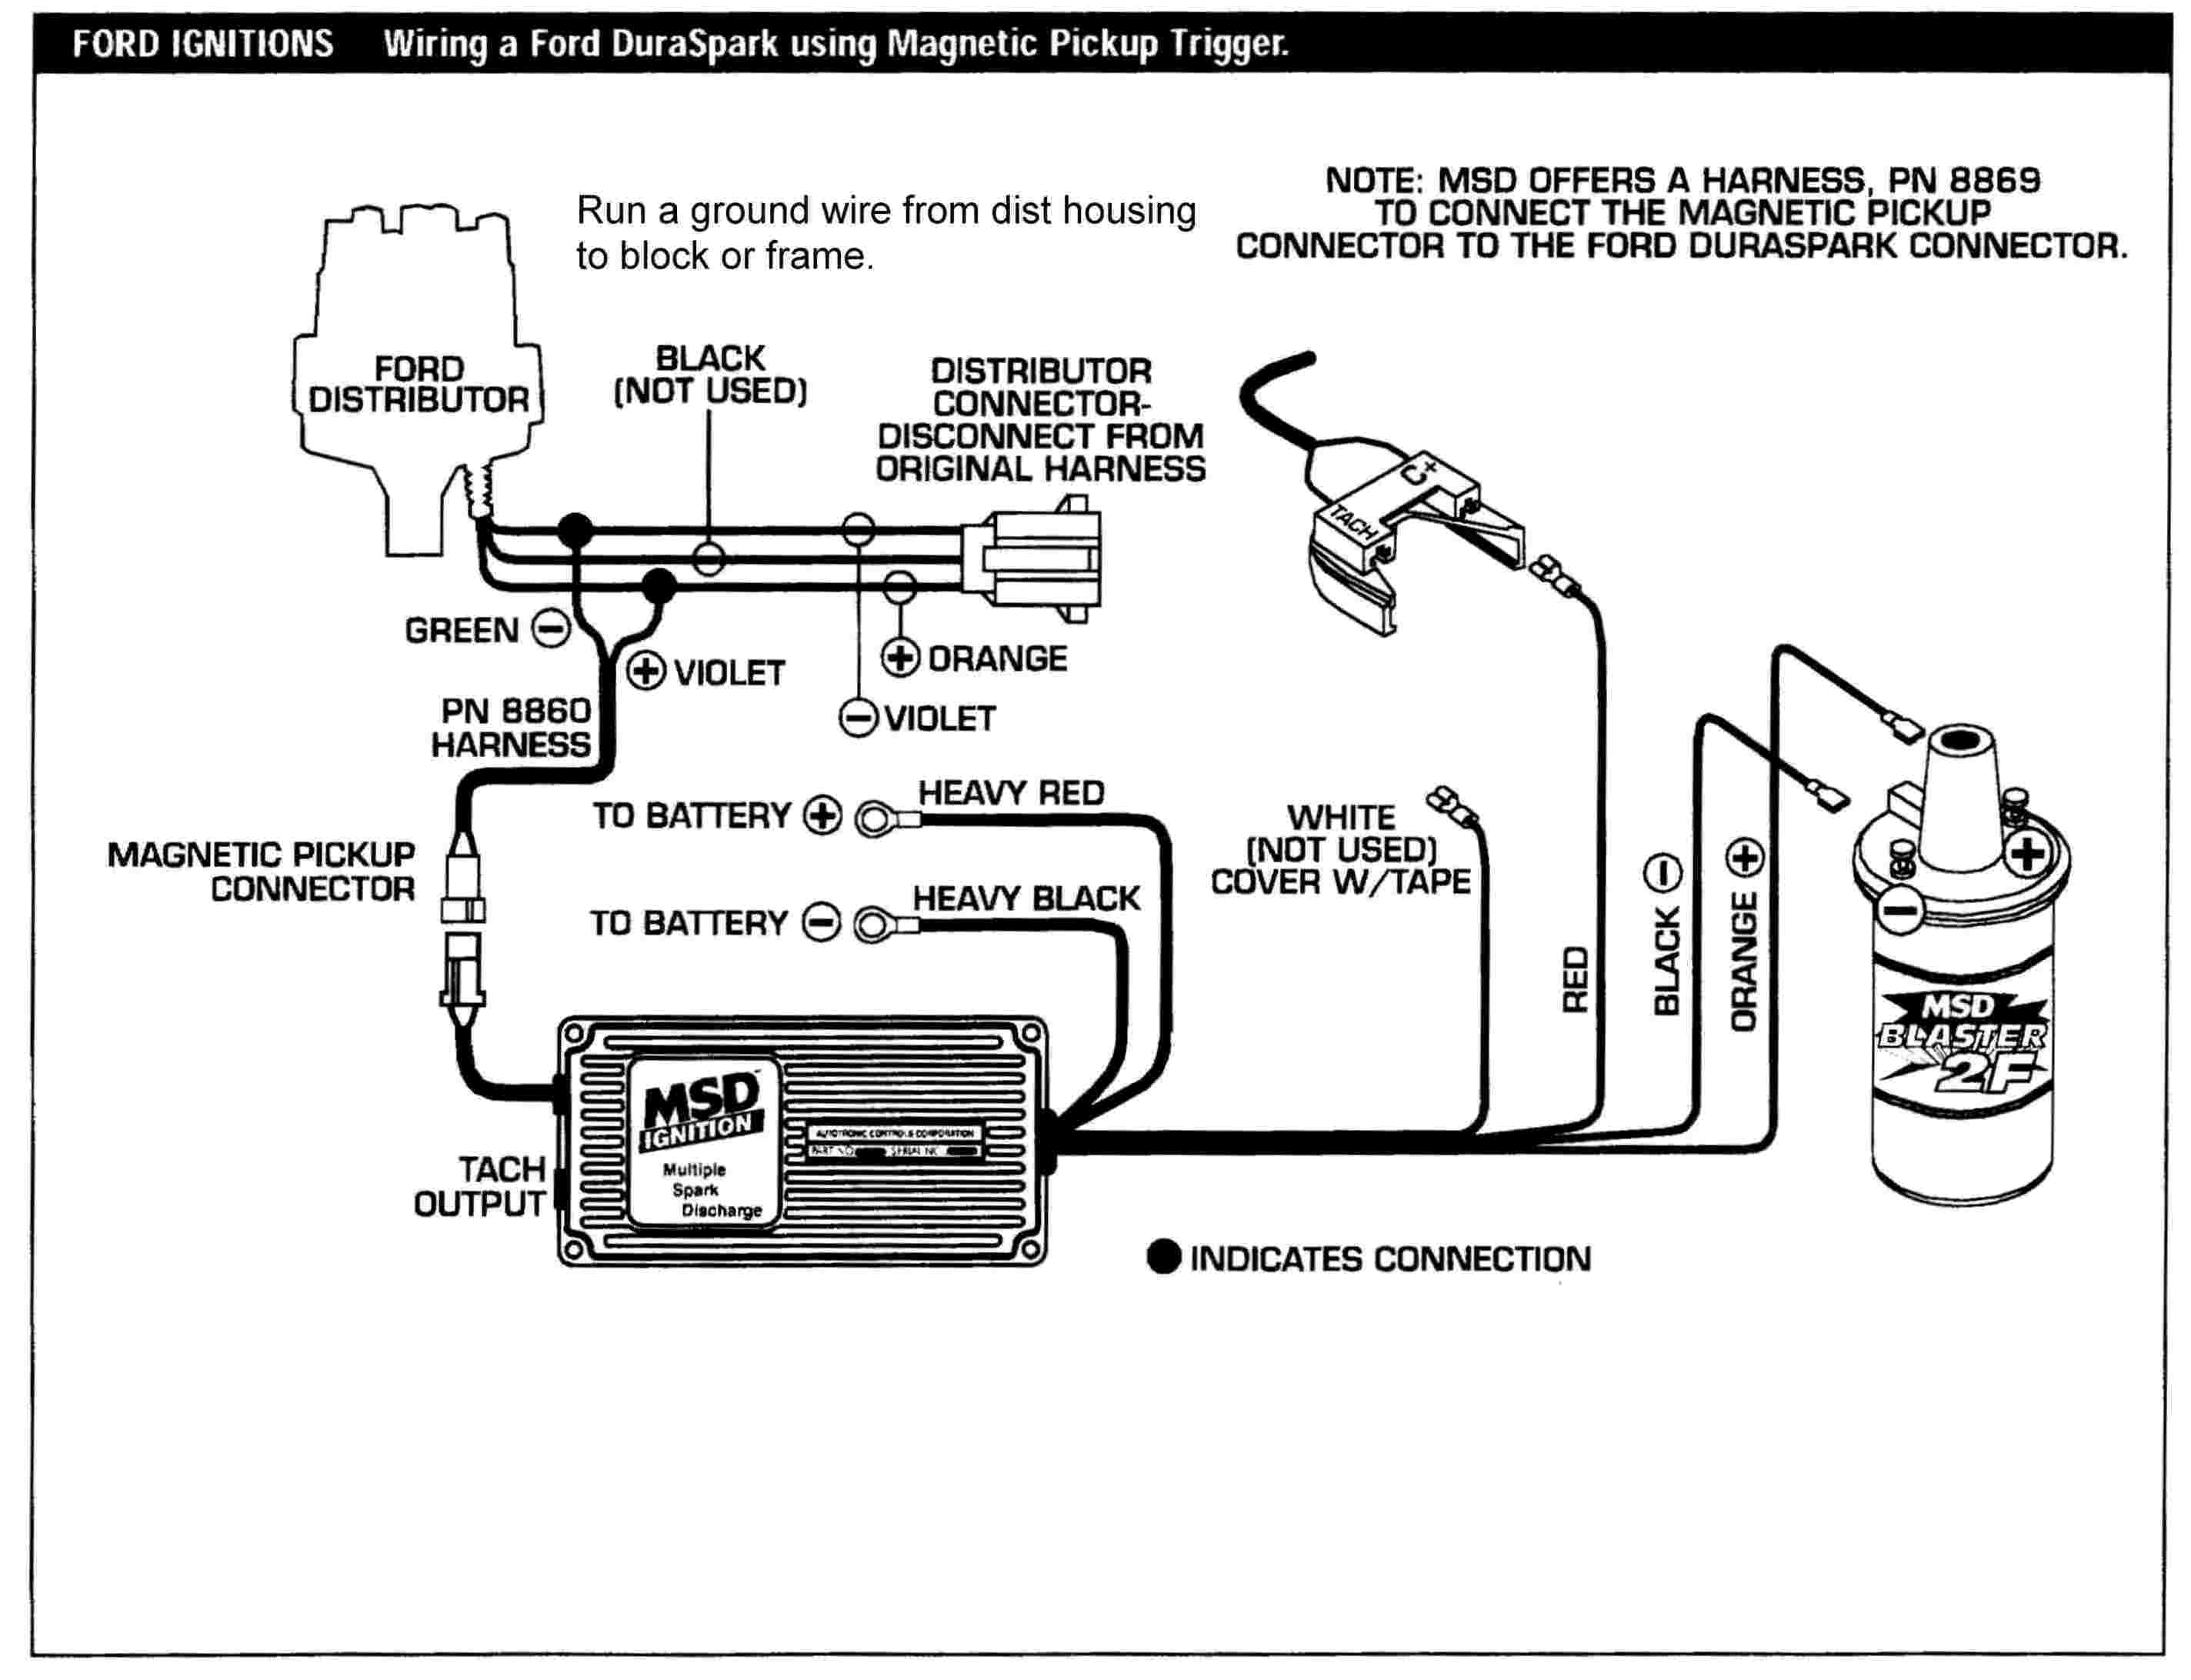 msd 6 wiring diagram msd al wiring diagram chevy wiring diagram msd ignition wiring diagram a images ford coil wiring diagram ignition wiring diagram further msd 6al